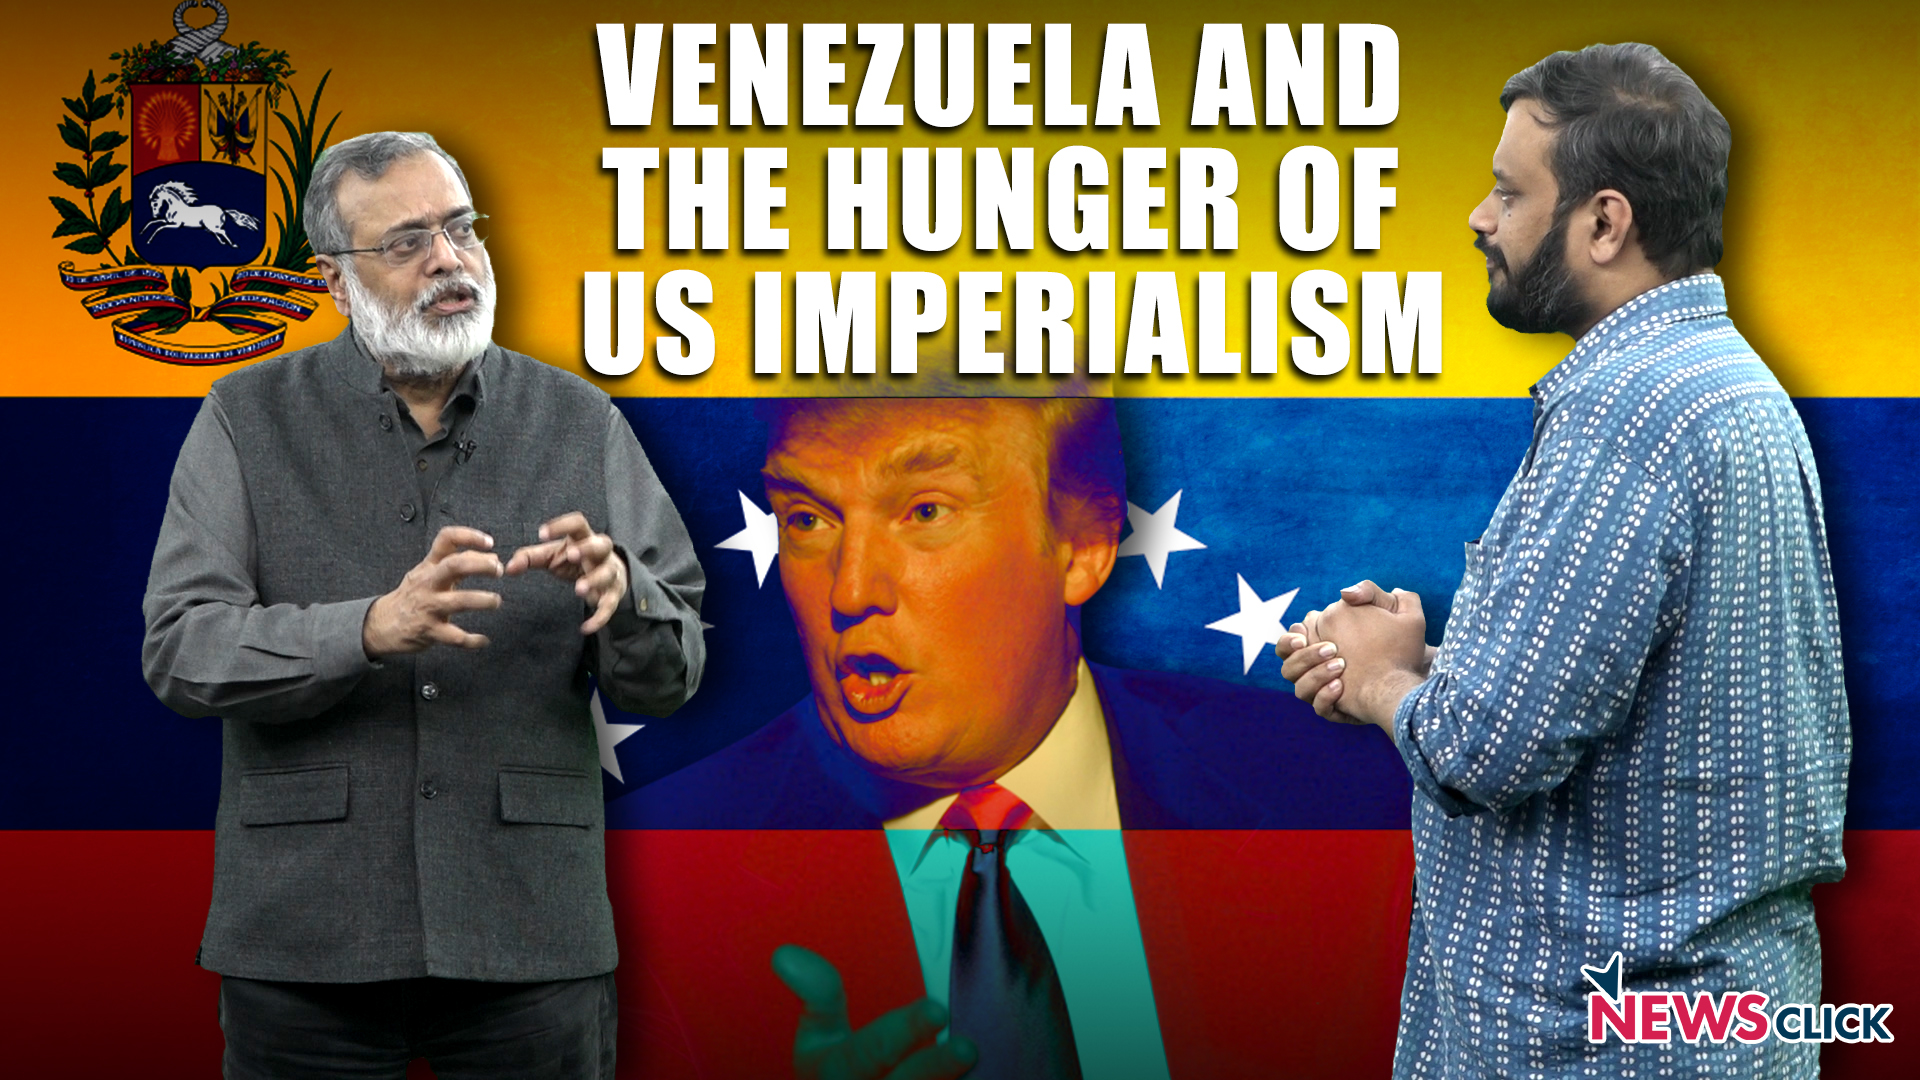 Venezuela and the Hunger of US Imperialism